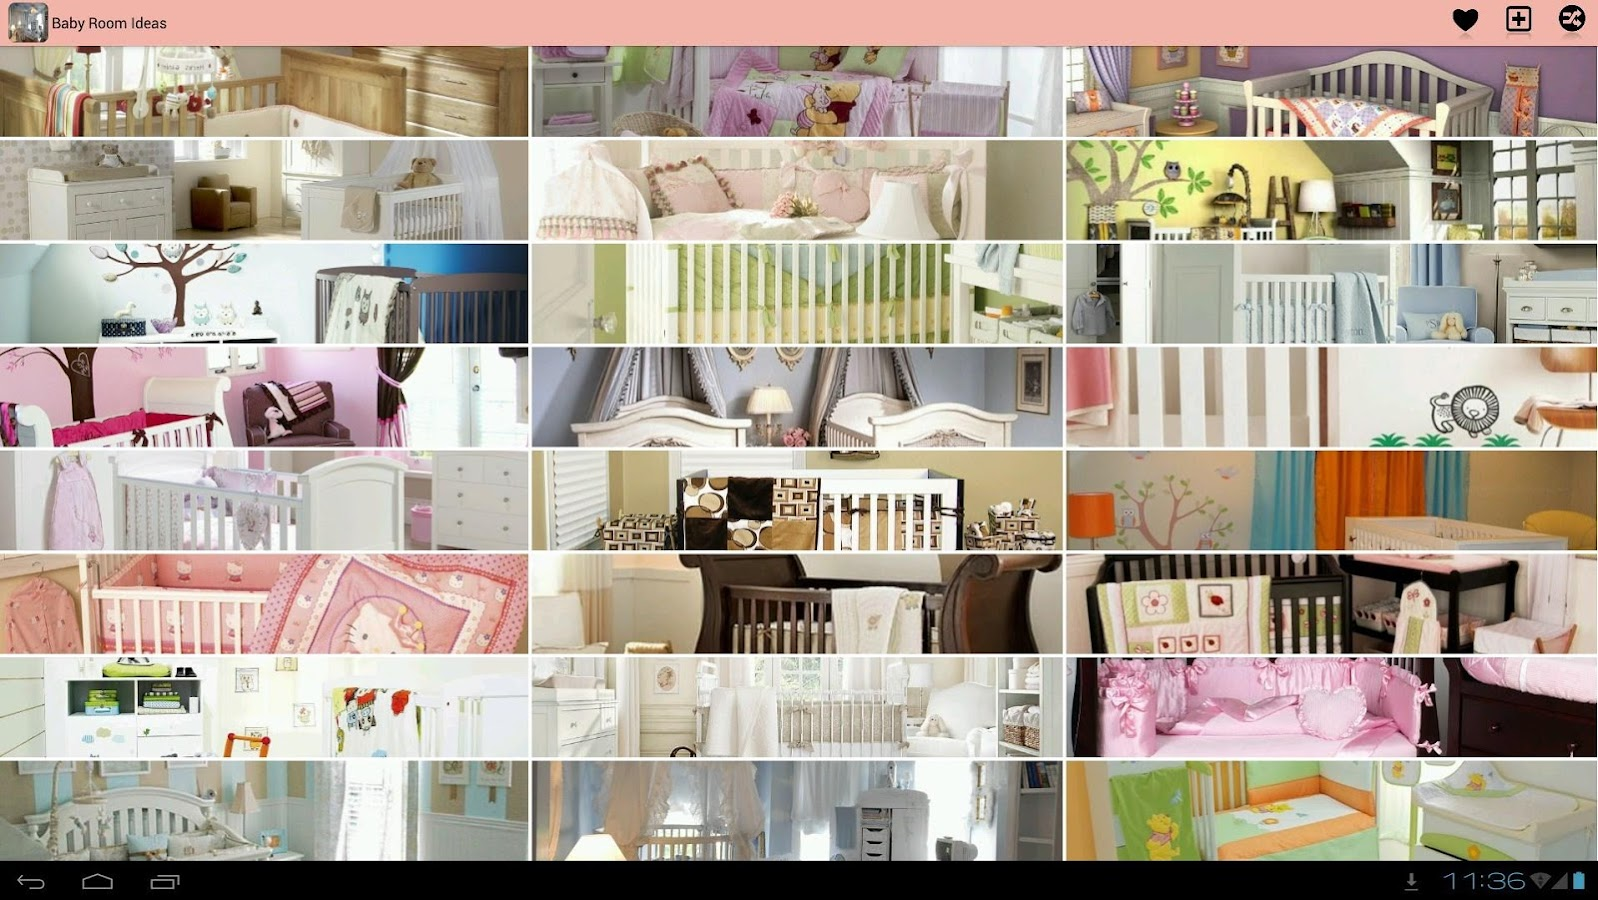 Baby room decor ideas android apps on google play for Room design ideas app